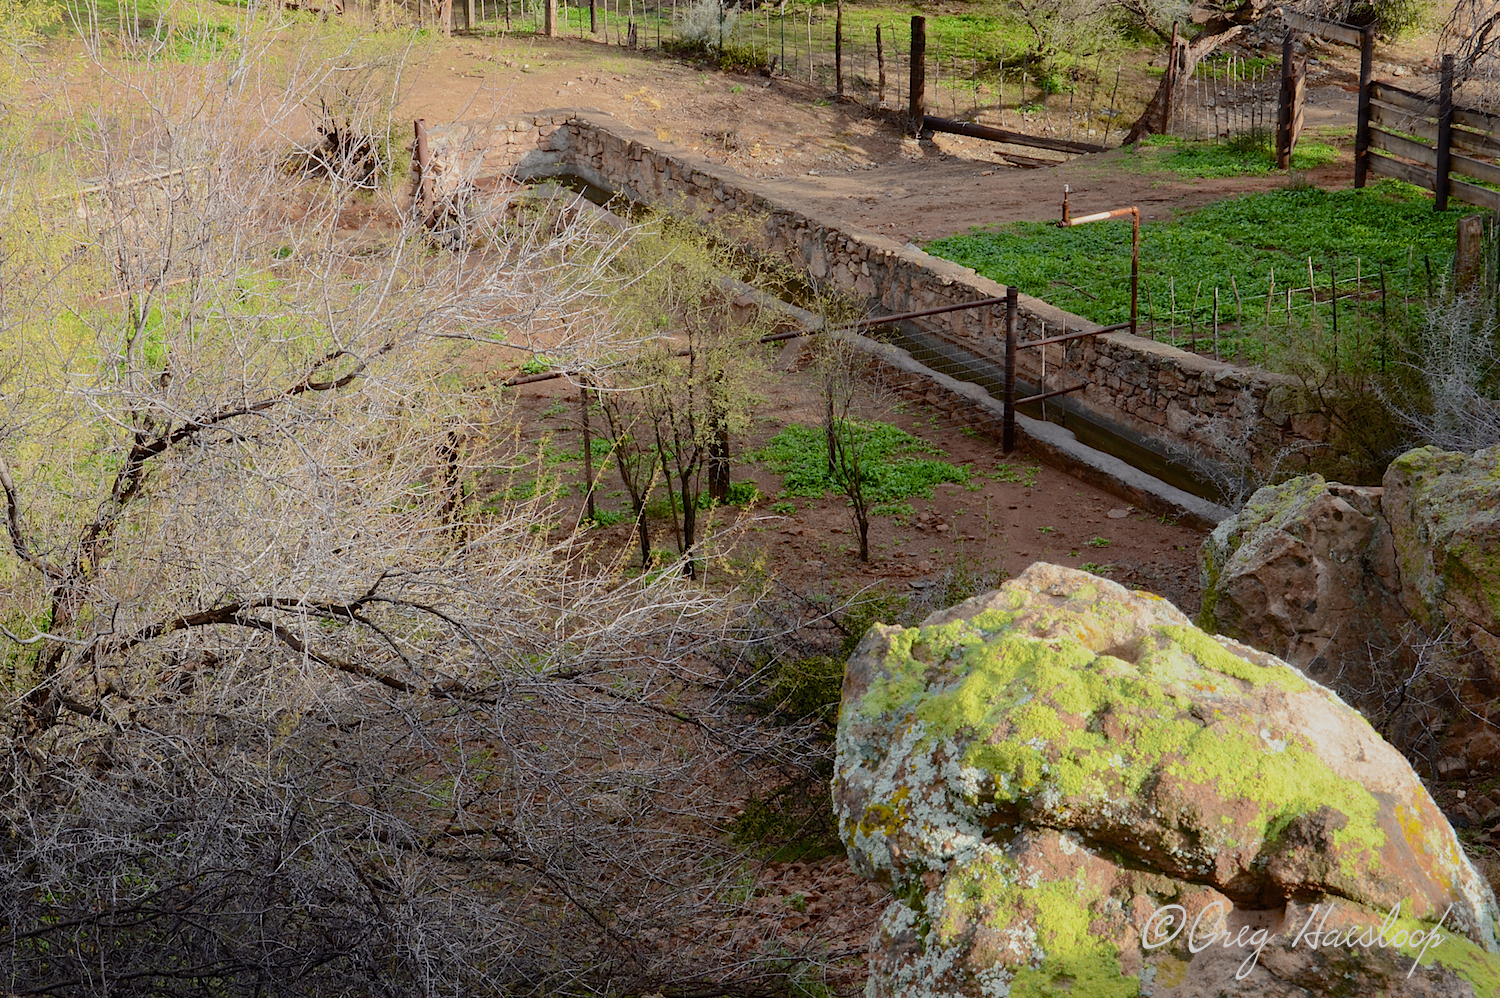 Picketpost has its iconic windmill and if you go further into the area you will find lots of rock walls, fences and an old corral. This is a good view looking down at part of the area. And that rock? Hmmmm . . . . ask Greg.